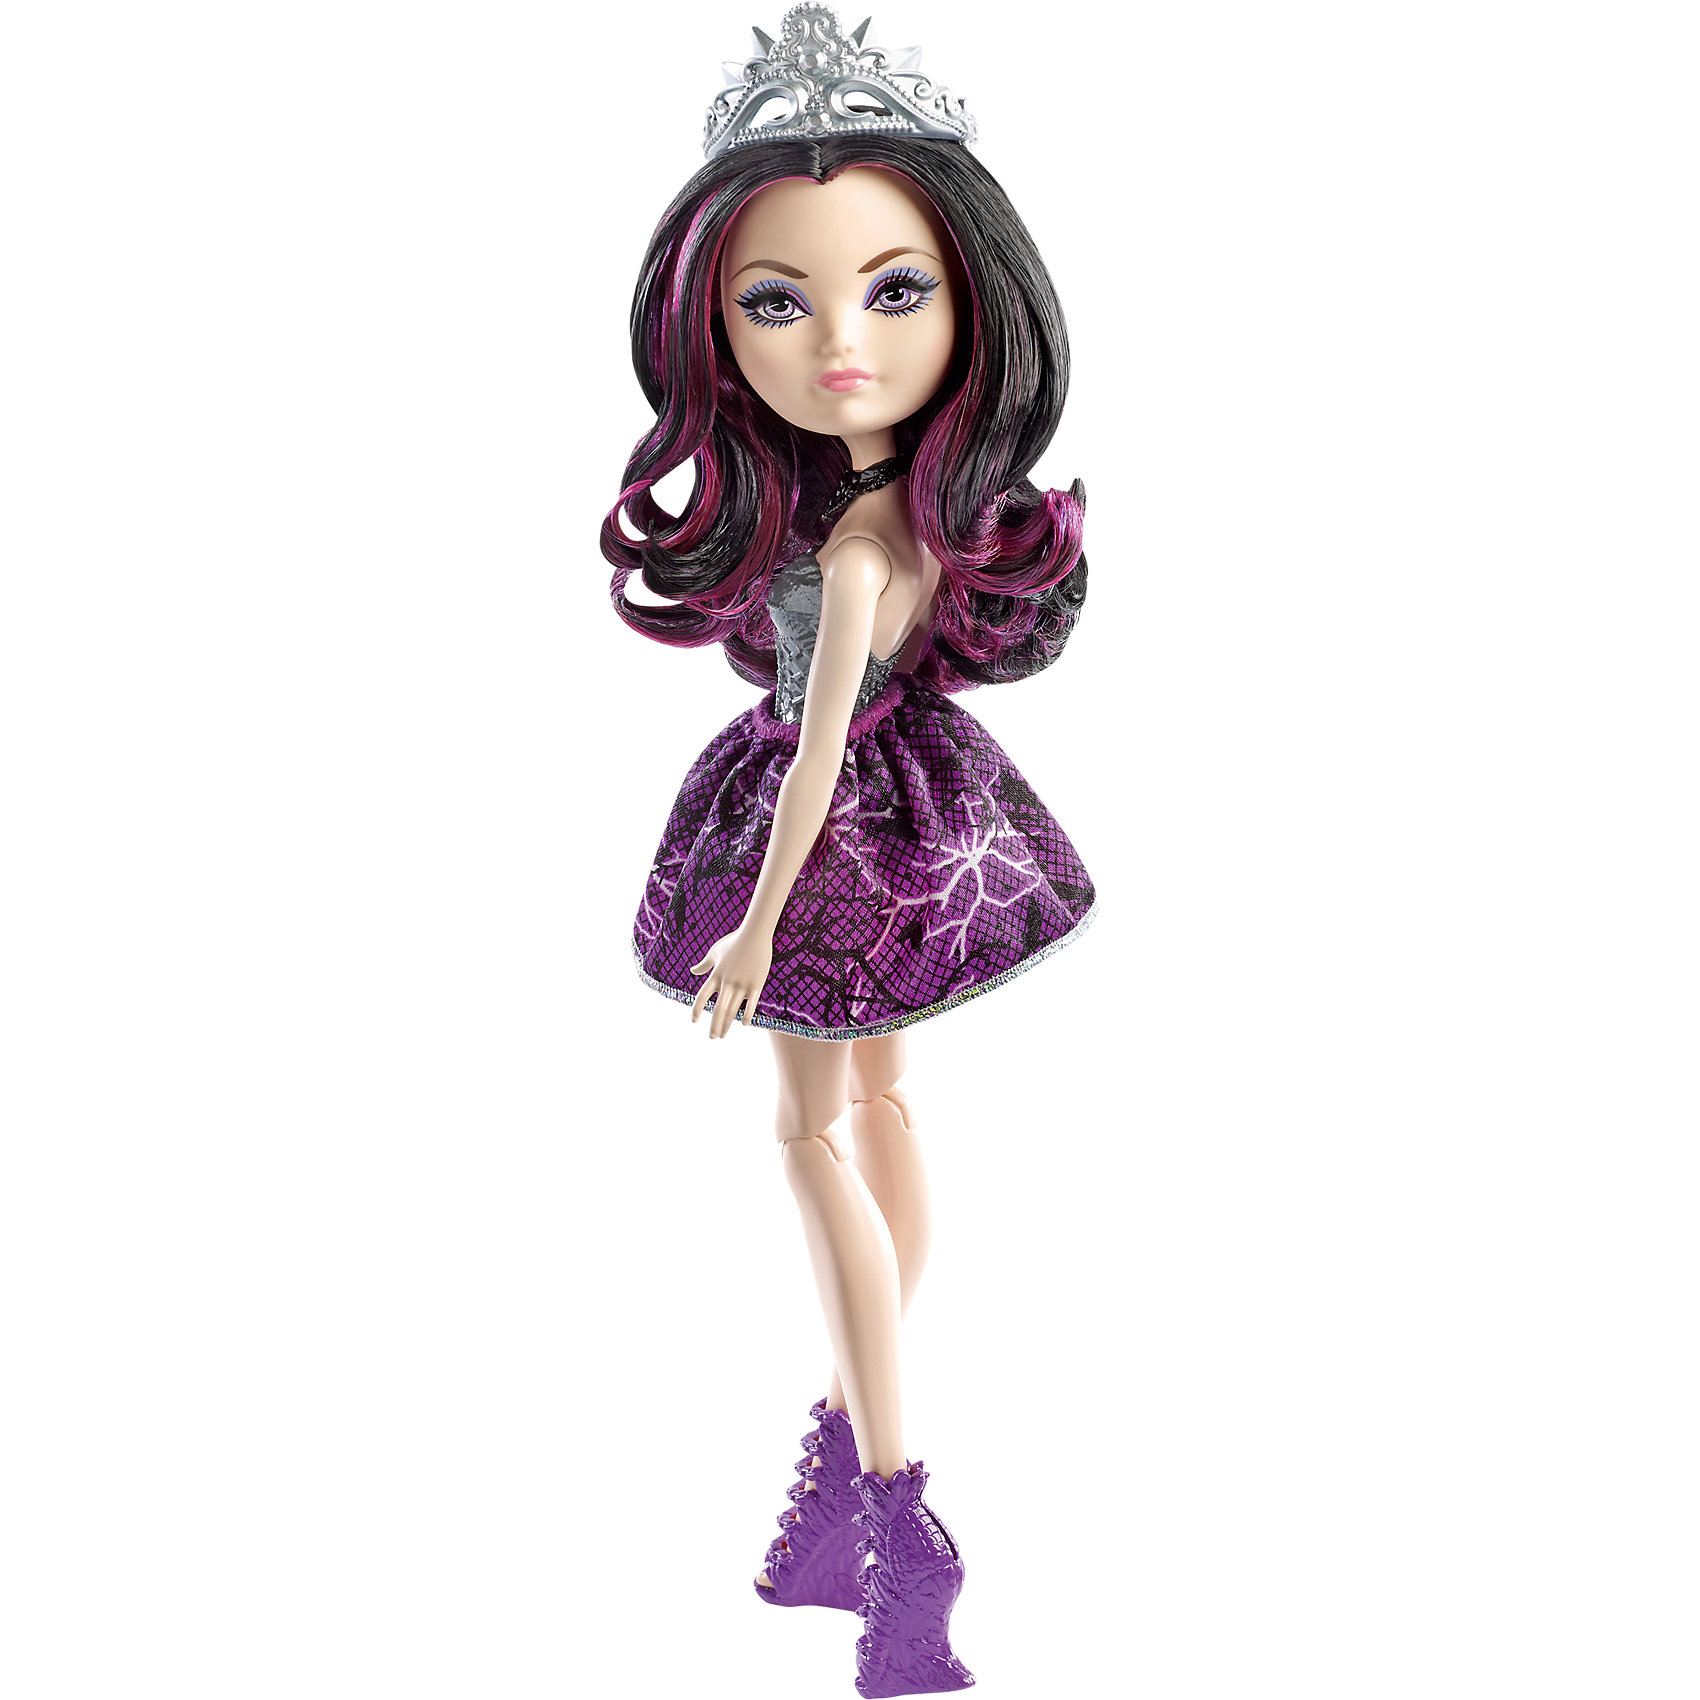 Mattel КуклаРэйвен Квин,  Ever After High mattel ever after high dvh81 куклы лучницы банни бланк